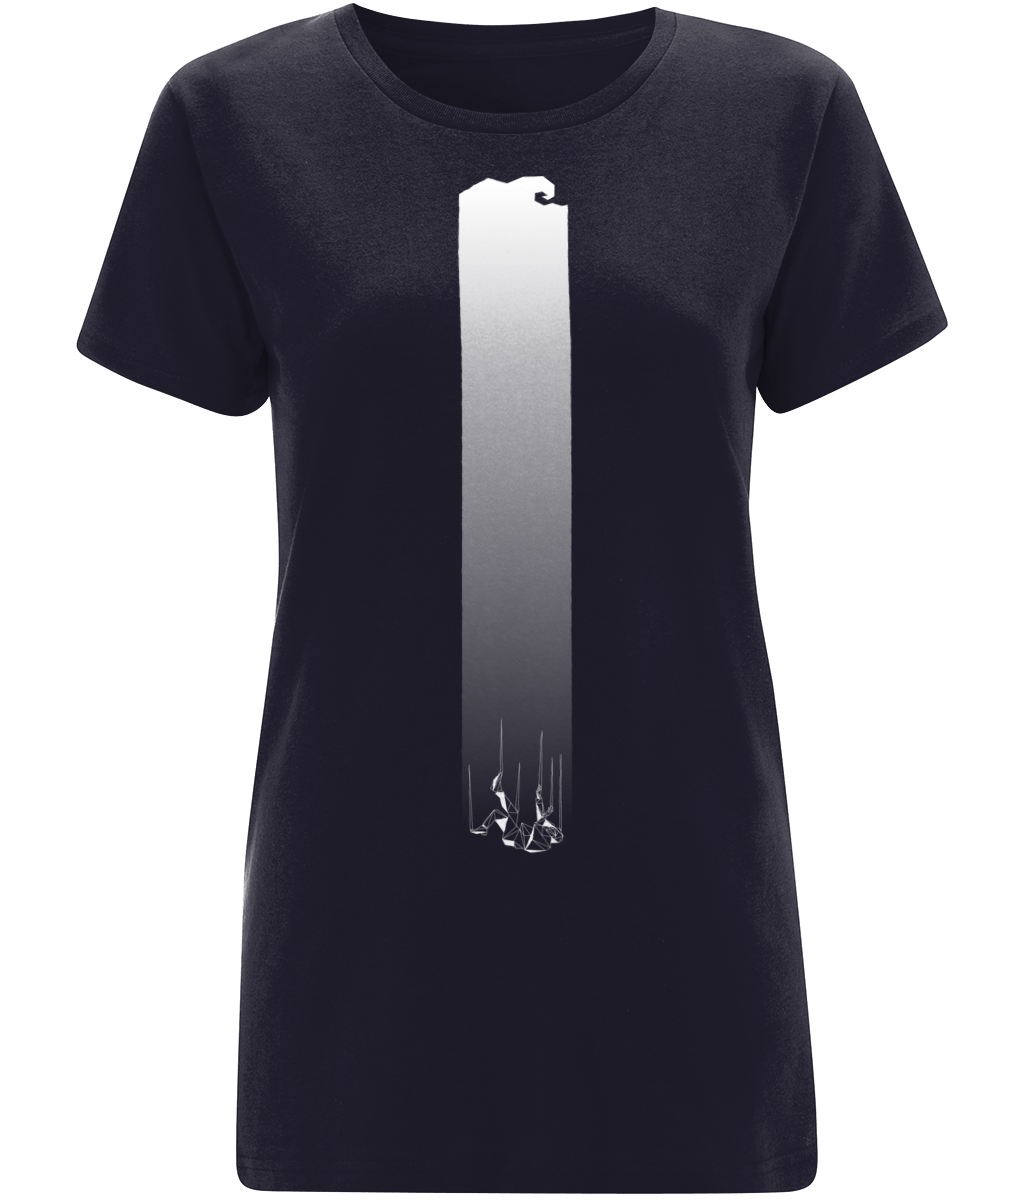 Drowning Women's Navy T-Shirt